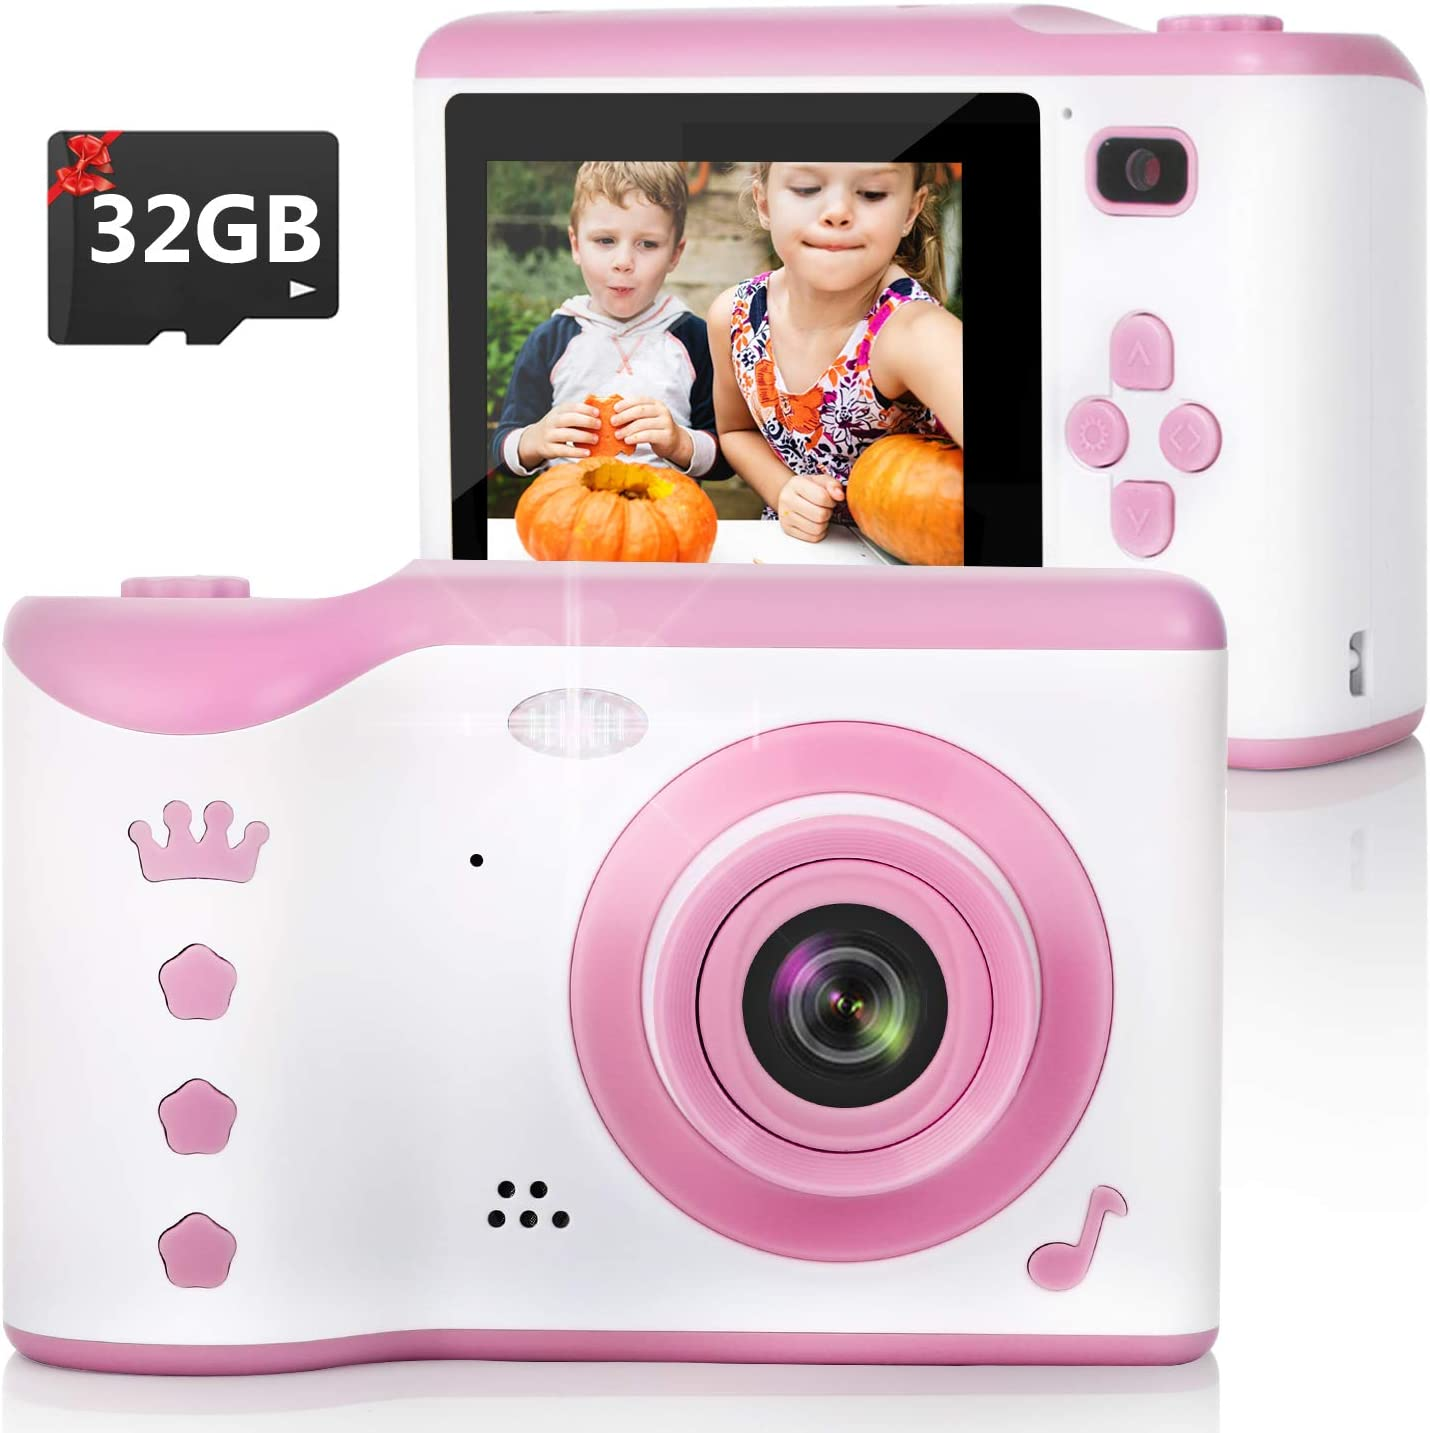 Amazon Com Kids Camera 8 0mp Digital Dual Camera Rechargeable Shockproof Camcorder Camera With 2 8 Inch Touch Screen 32gb Sd Card Included Ideal Toy For 3 12 Years Old Girls Boys Party Outdoor Pink Toys Games